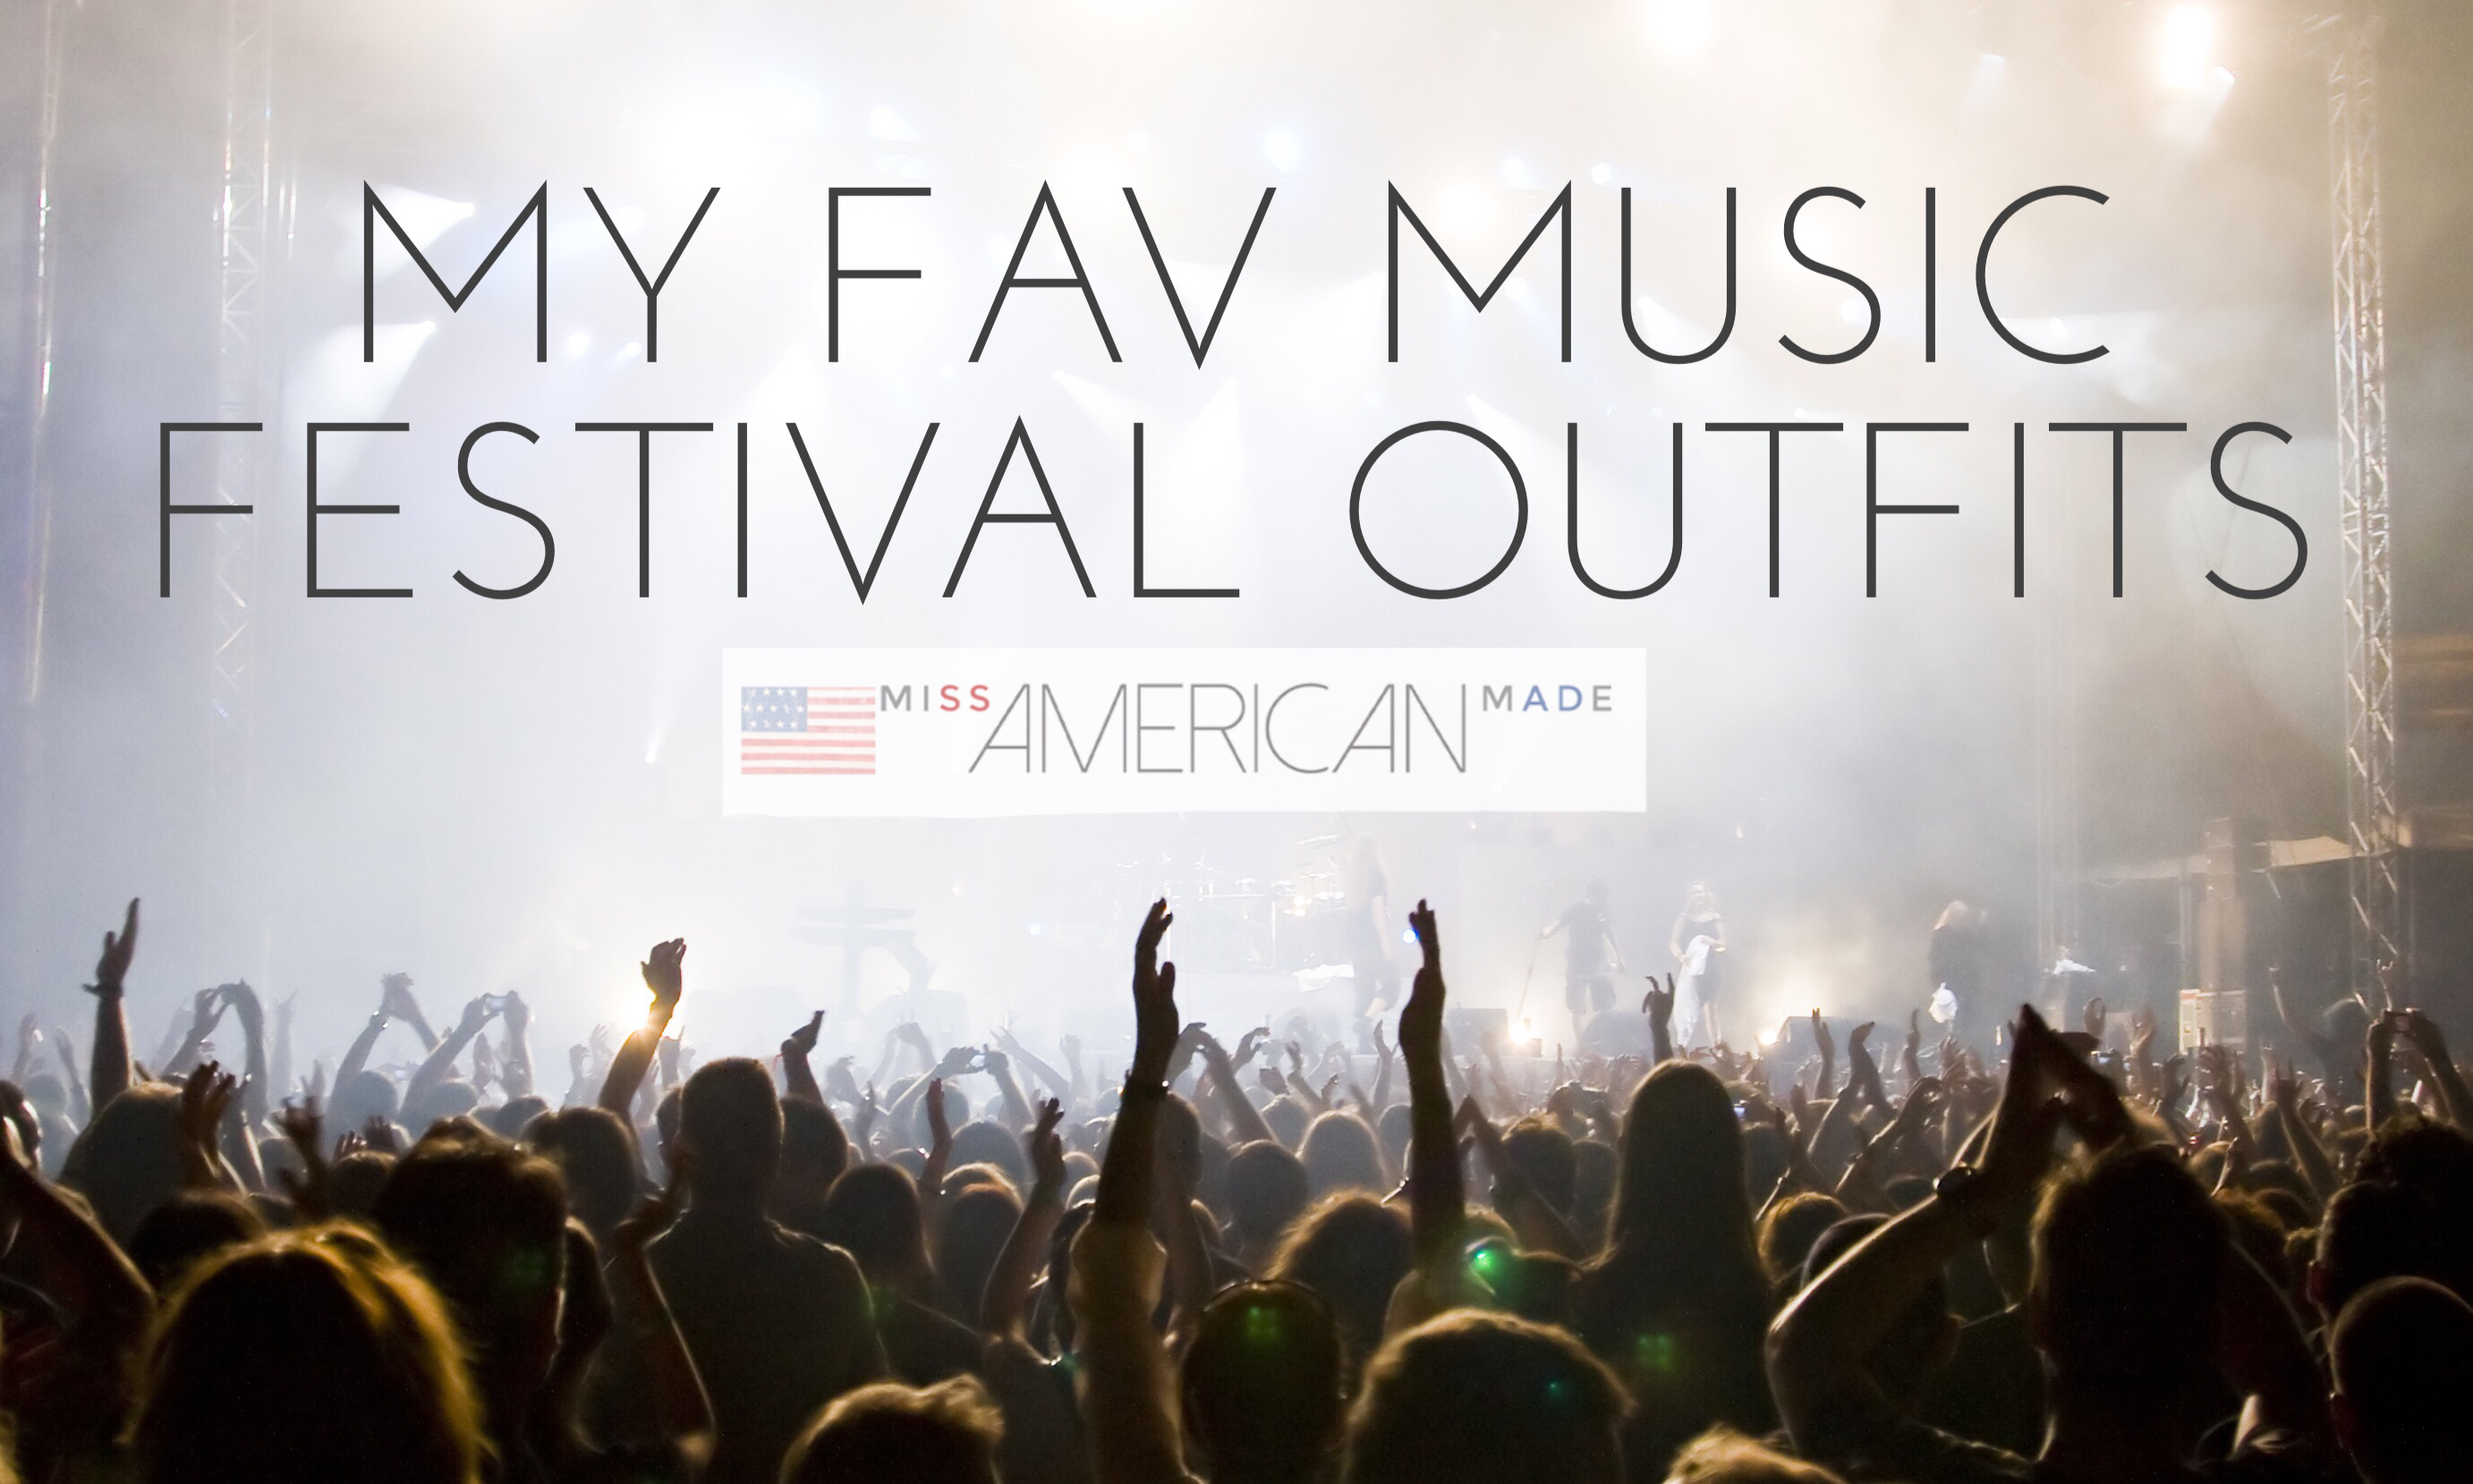 Music Festival Favorite Outfits: Made in USA